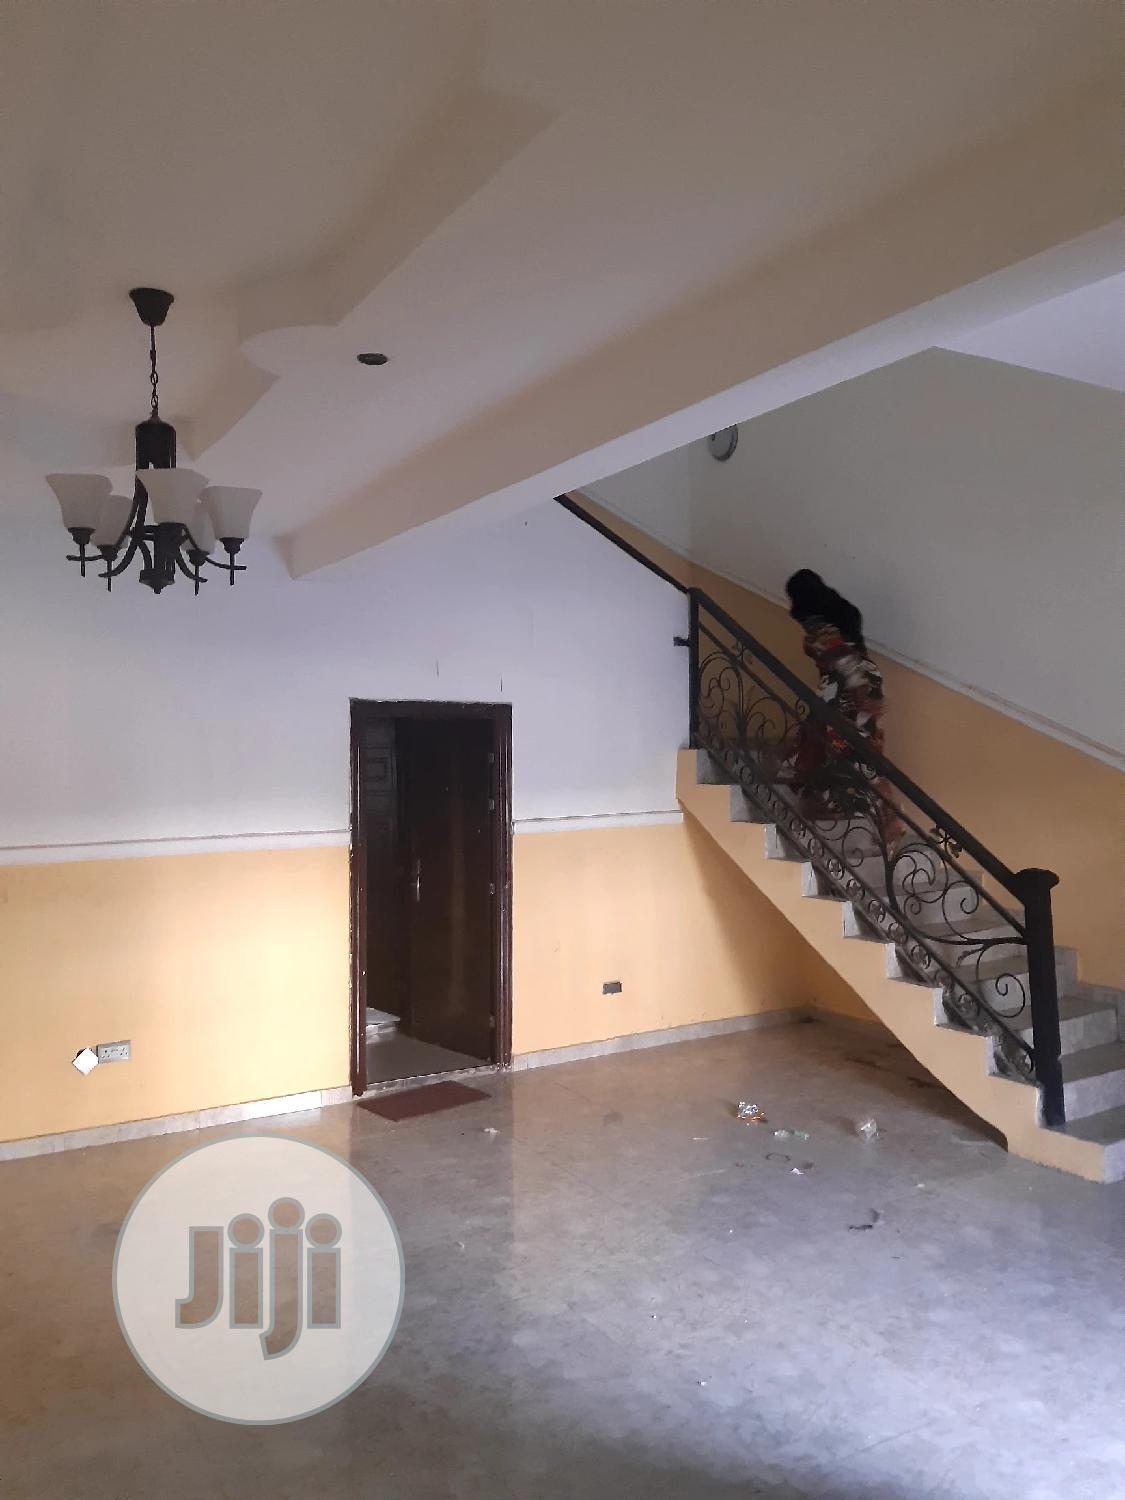 3 Bedrooms Terrace Duplex | Houses & Apartments For Rent for sale in Ajah, Lagos State, Nigeria